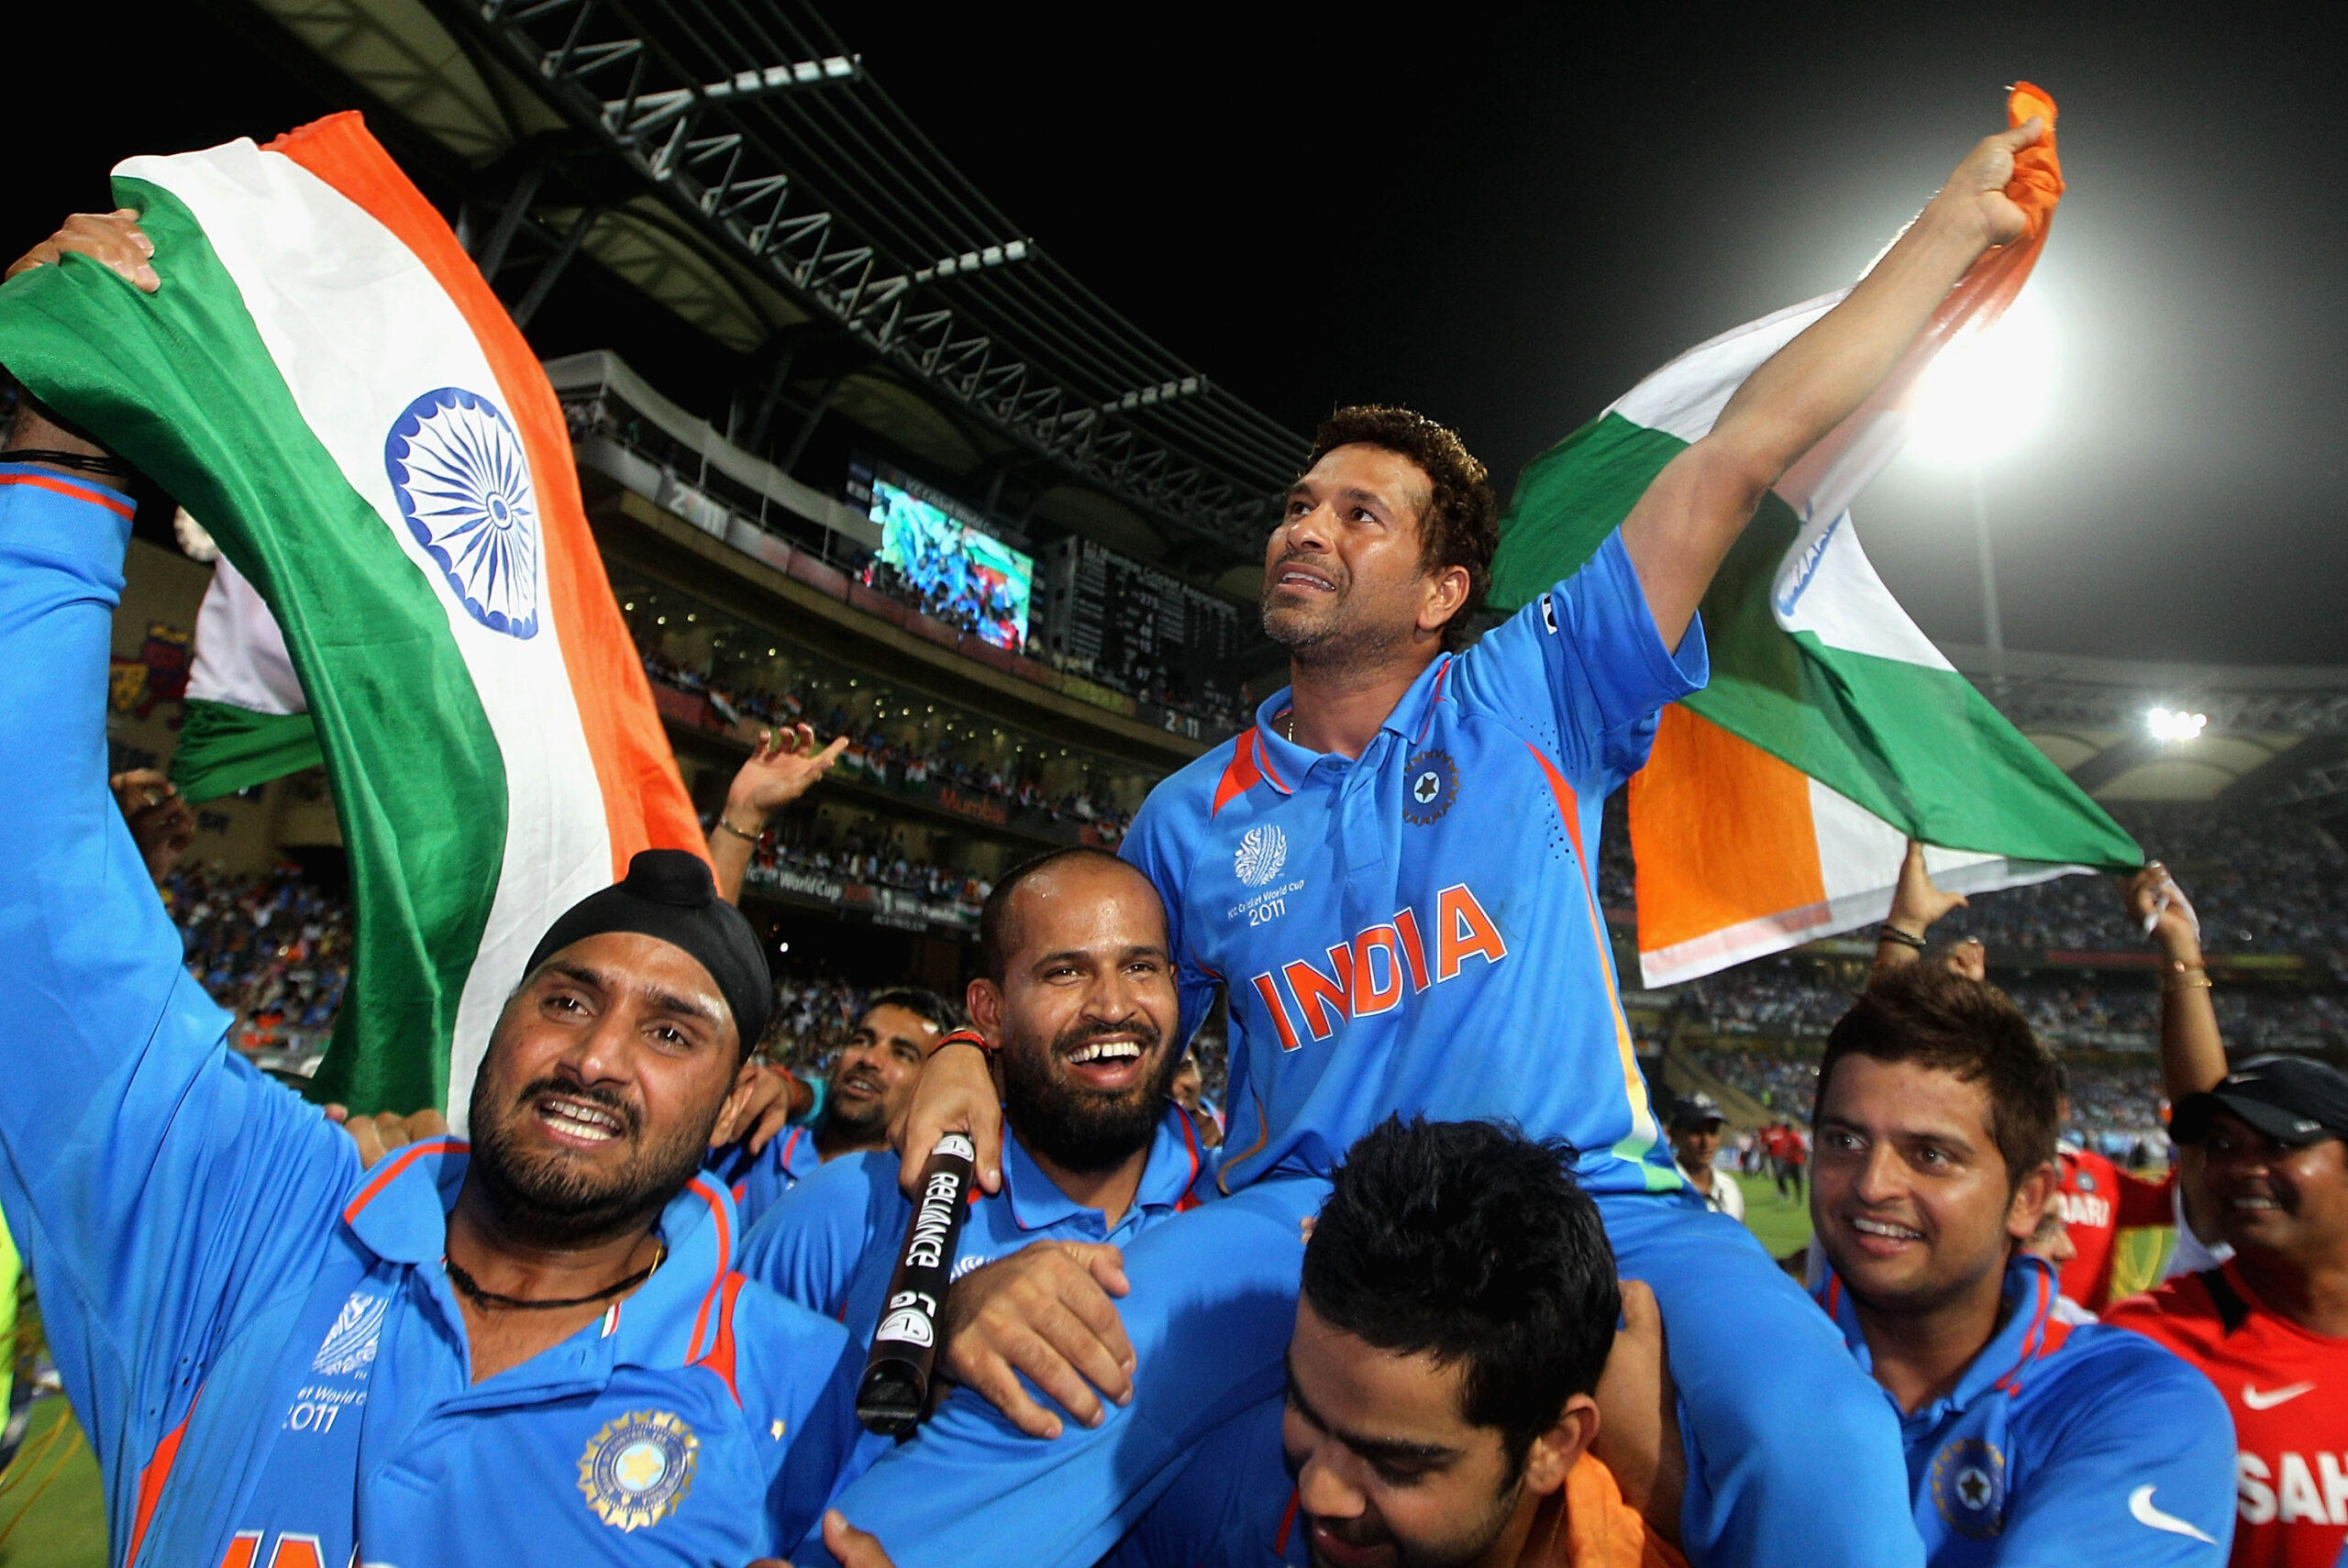 India v Sr2011 Cricket World Cup Final World Cup FinalIndia v Sri Lanka - 2011 ICC World Cup Final